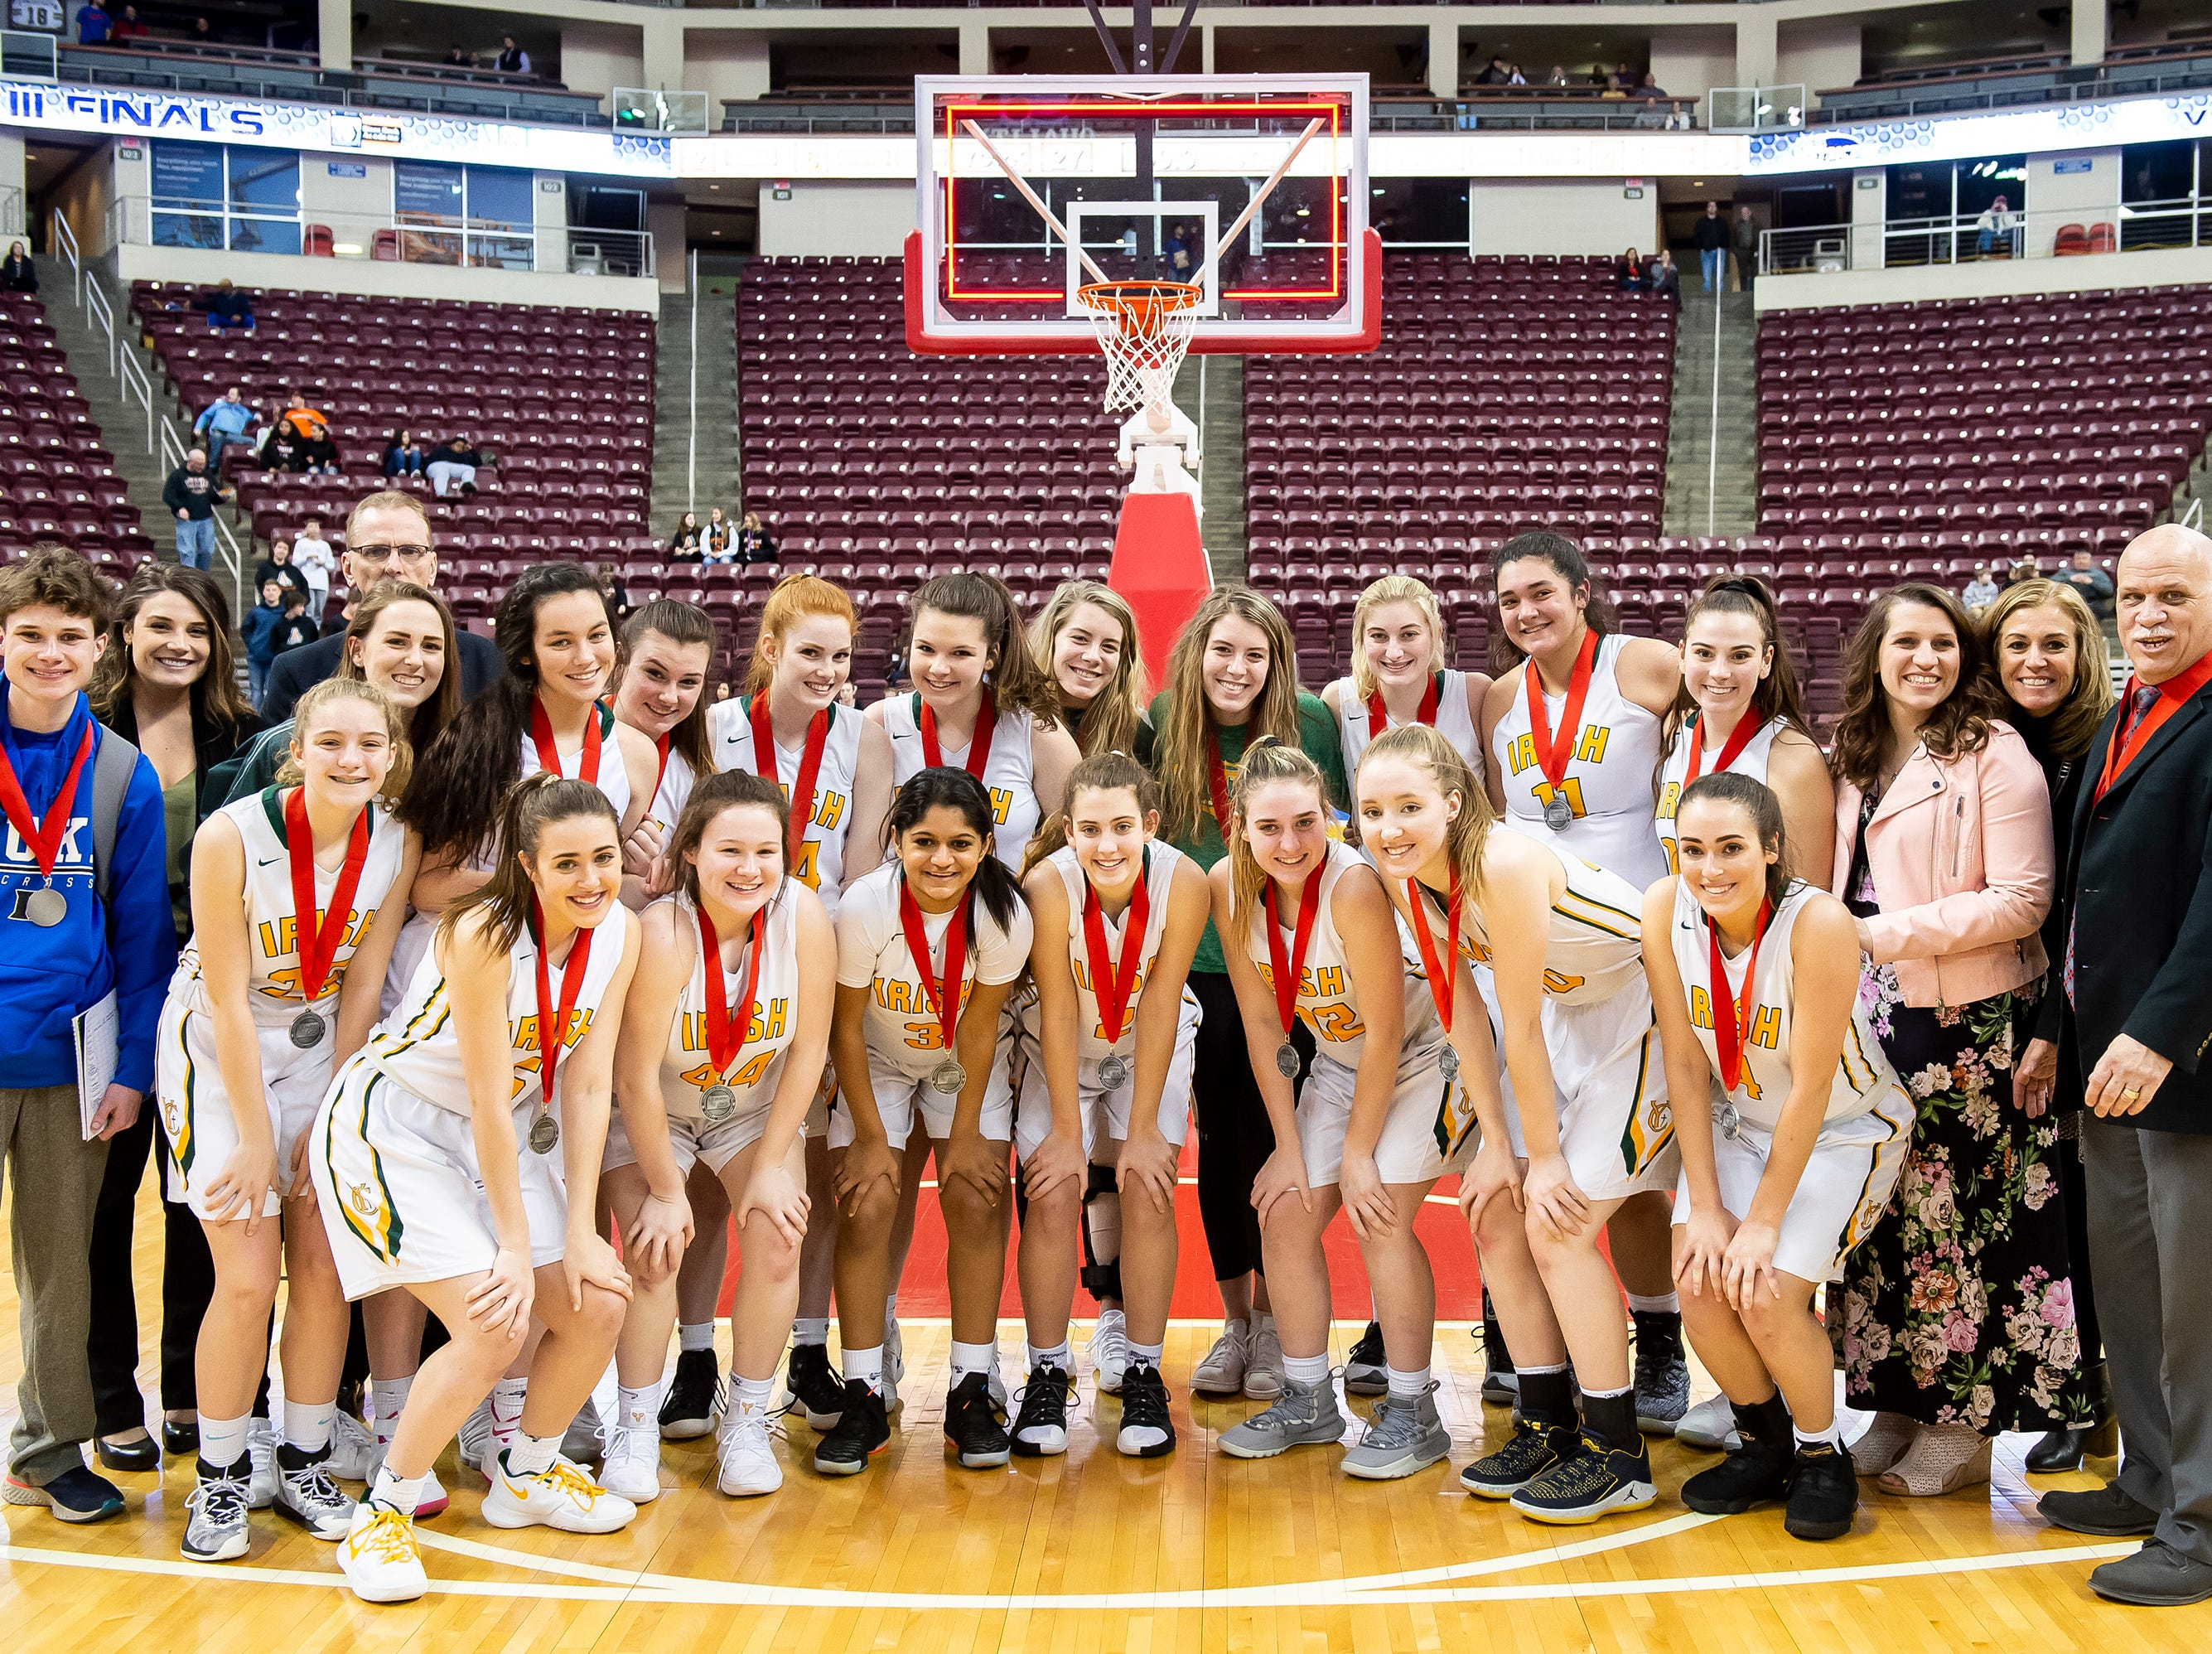 The 2018-2019 York Catholic girls basketball team pose for a photo after the District 3 2-A girls championship game at the Giant Center in Hershey Tuesday, Feb. 26, 2019. The Fighting Irish fell to Linden Hall 56-27.